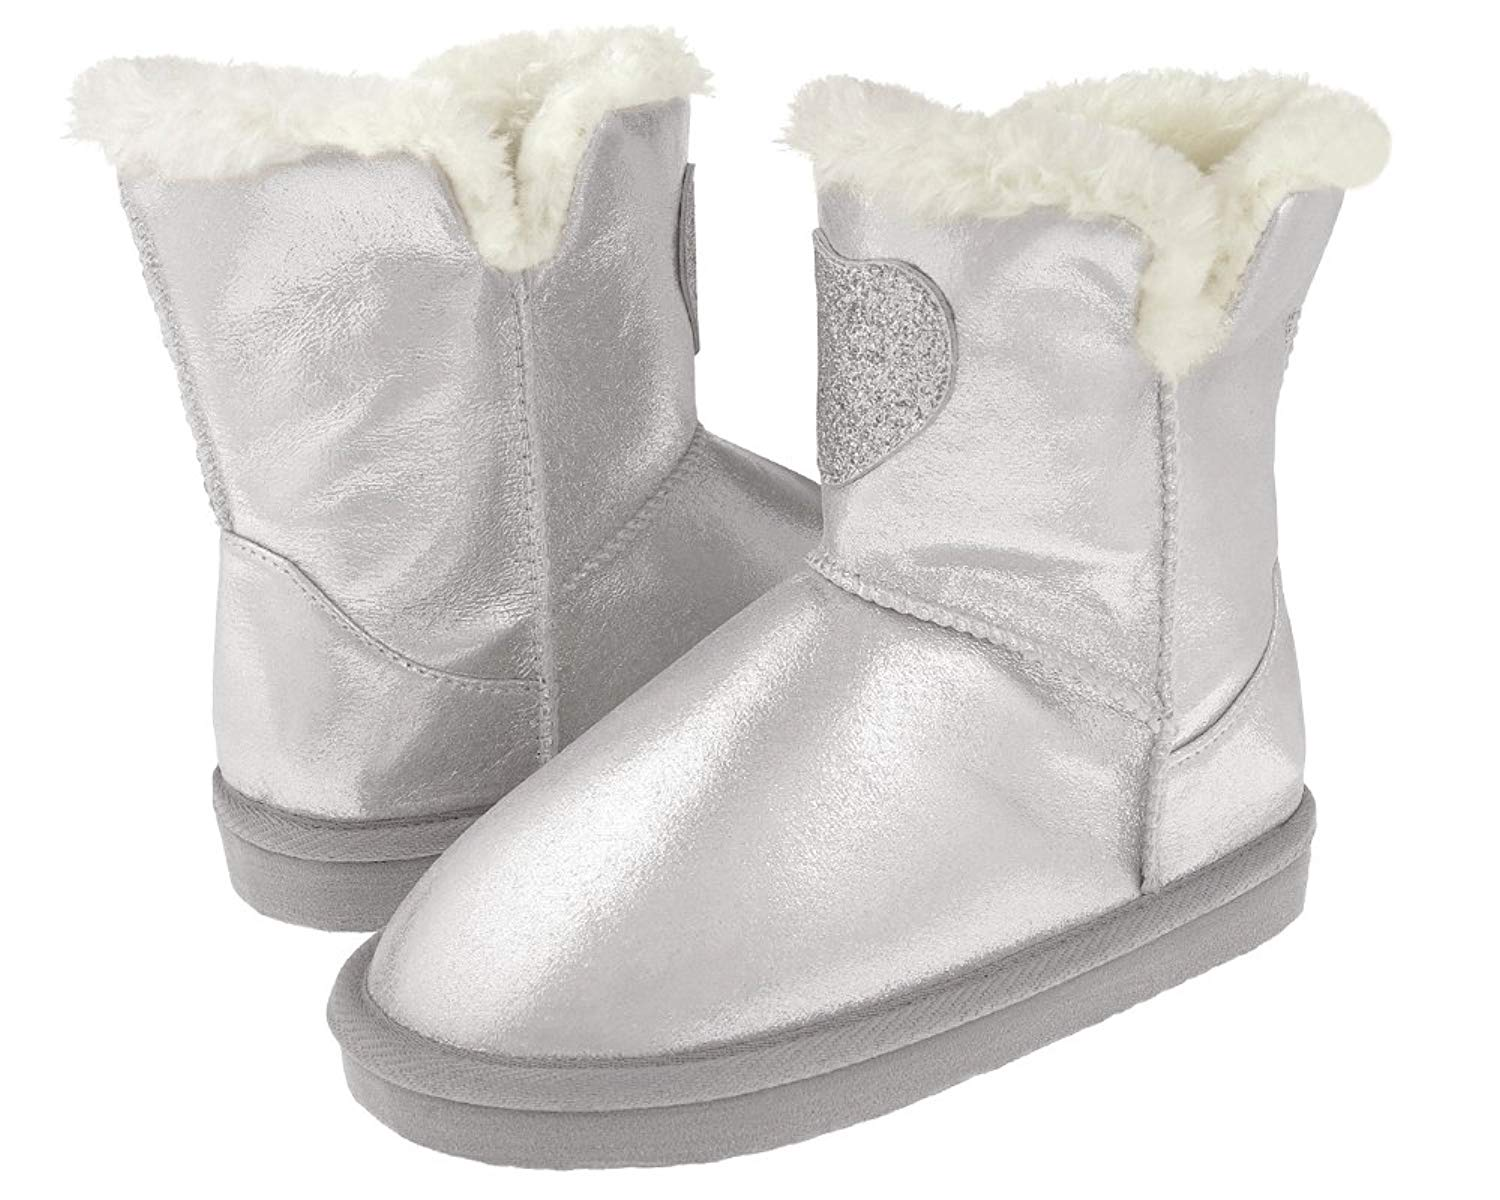 Capelli New York Metallic Shimmer Fabric Glitter Faux Leather Heart Patch and Faux Fur Lining Girls Boot